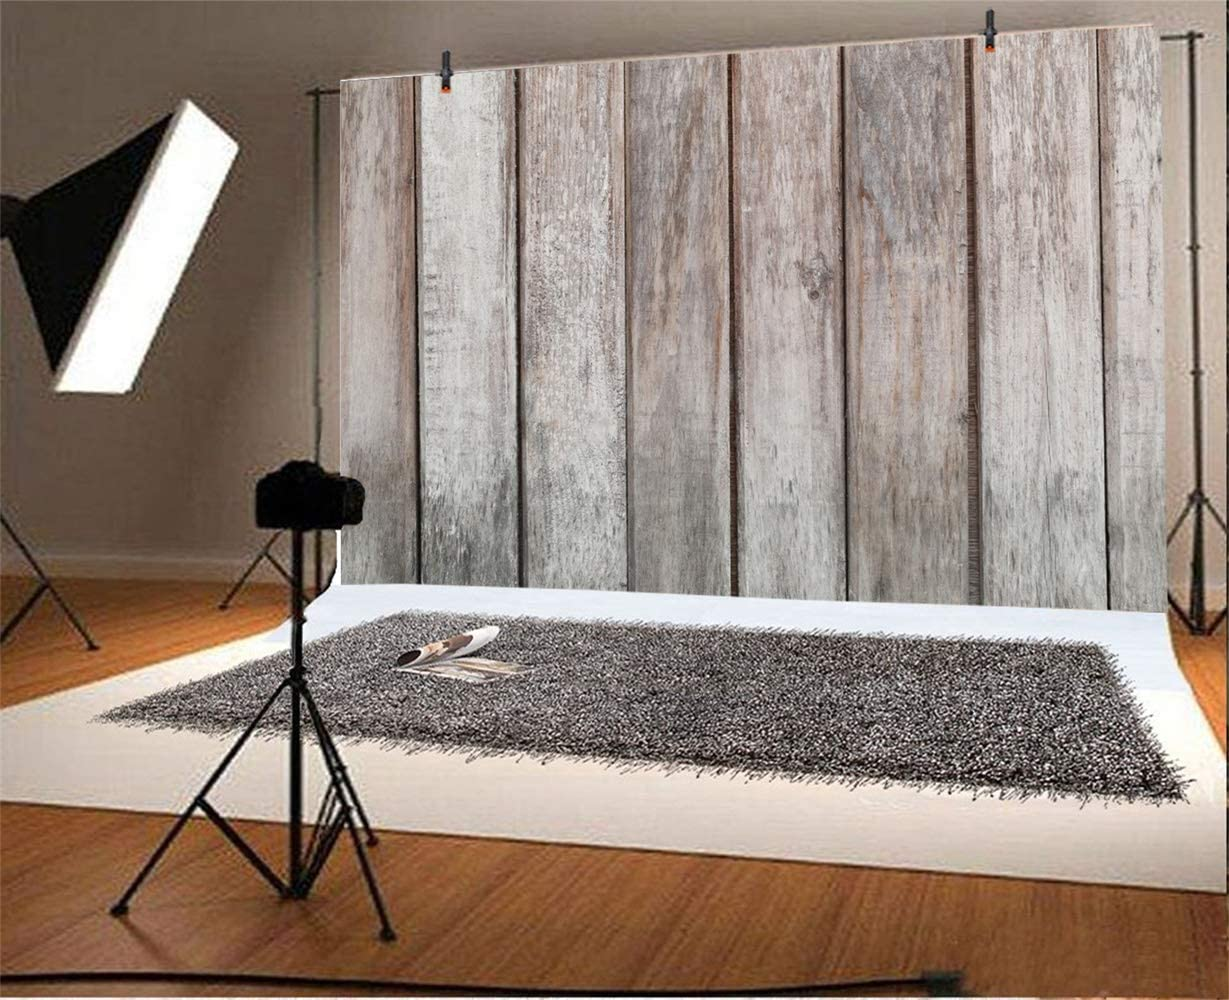 GoEoo 7x5ft Grunge Old Wood Texture Board Backdrop Vinyl Rustic Vertical Striped Wood Plank Background Child Adult Artistic Portrait Kid Clothes Pets Shoot Studio Countryside